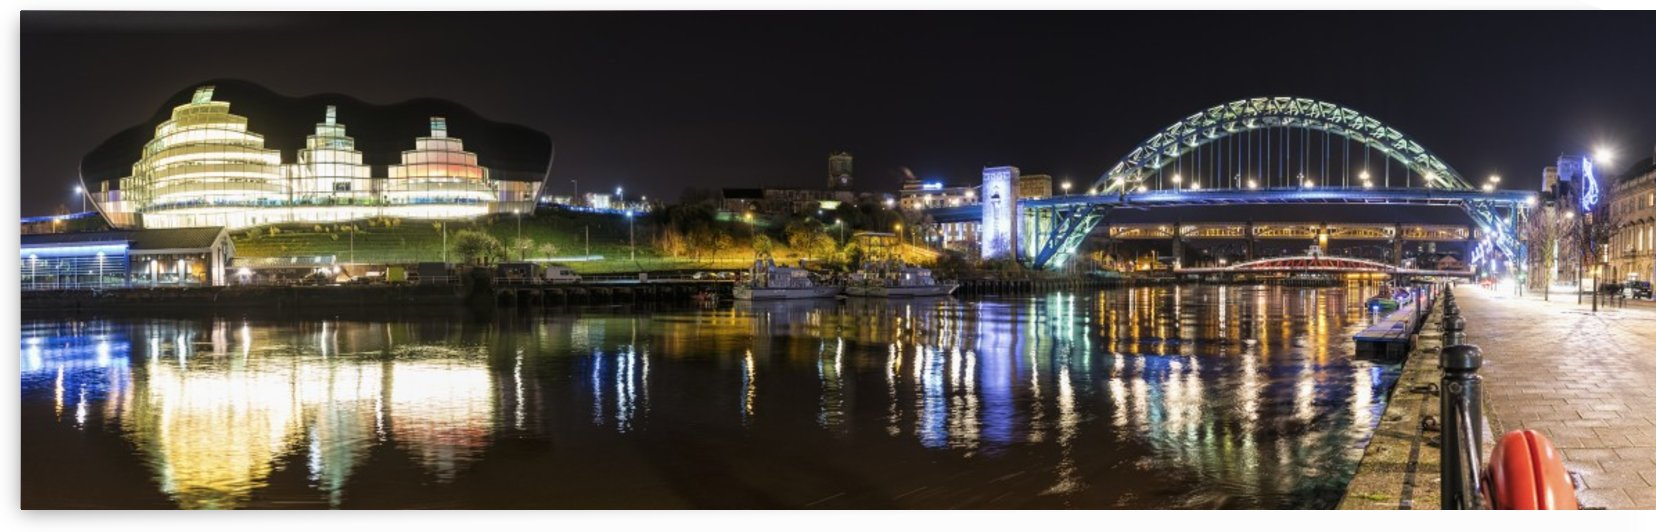 Tyne Bridge illuminated at nighttime over River Tyne and illuminated buildings; Newcastle, Tyne and Wear, England by PacificStock